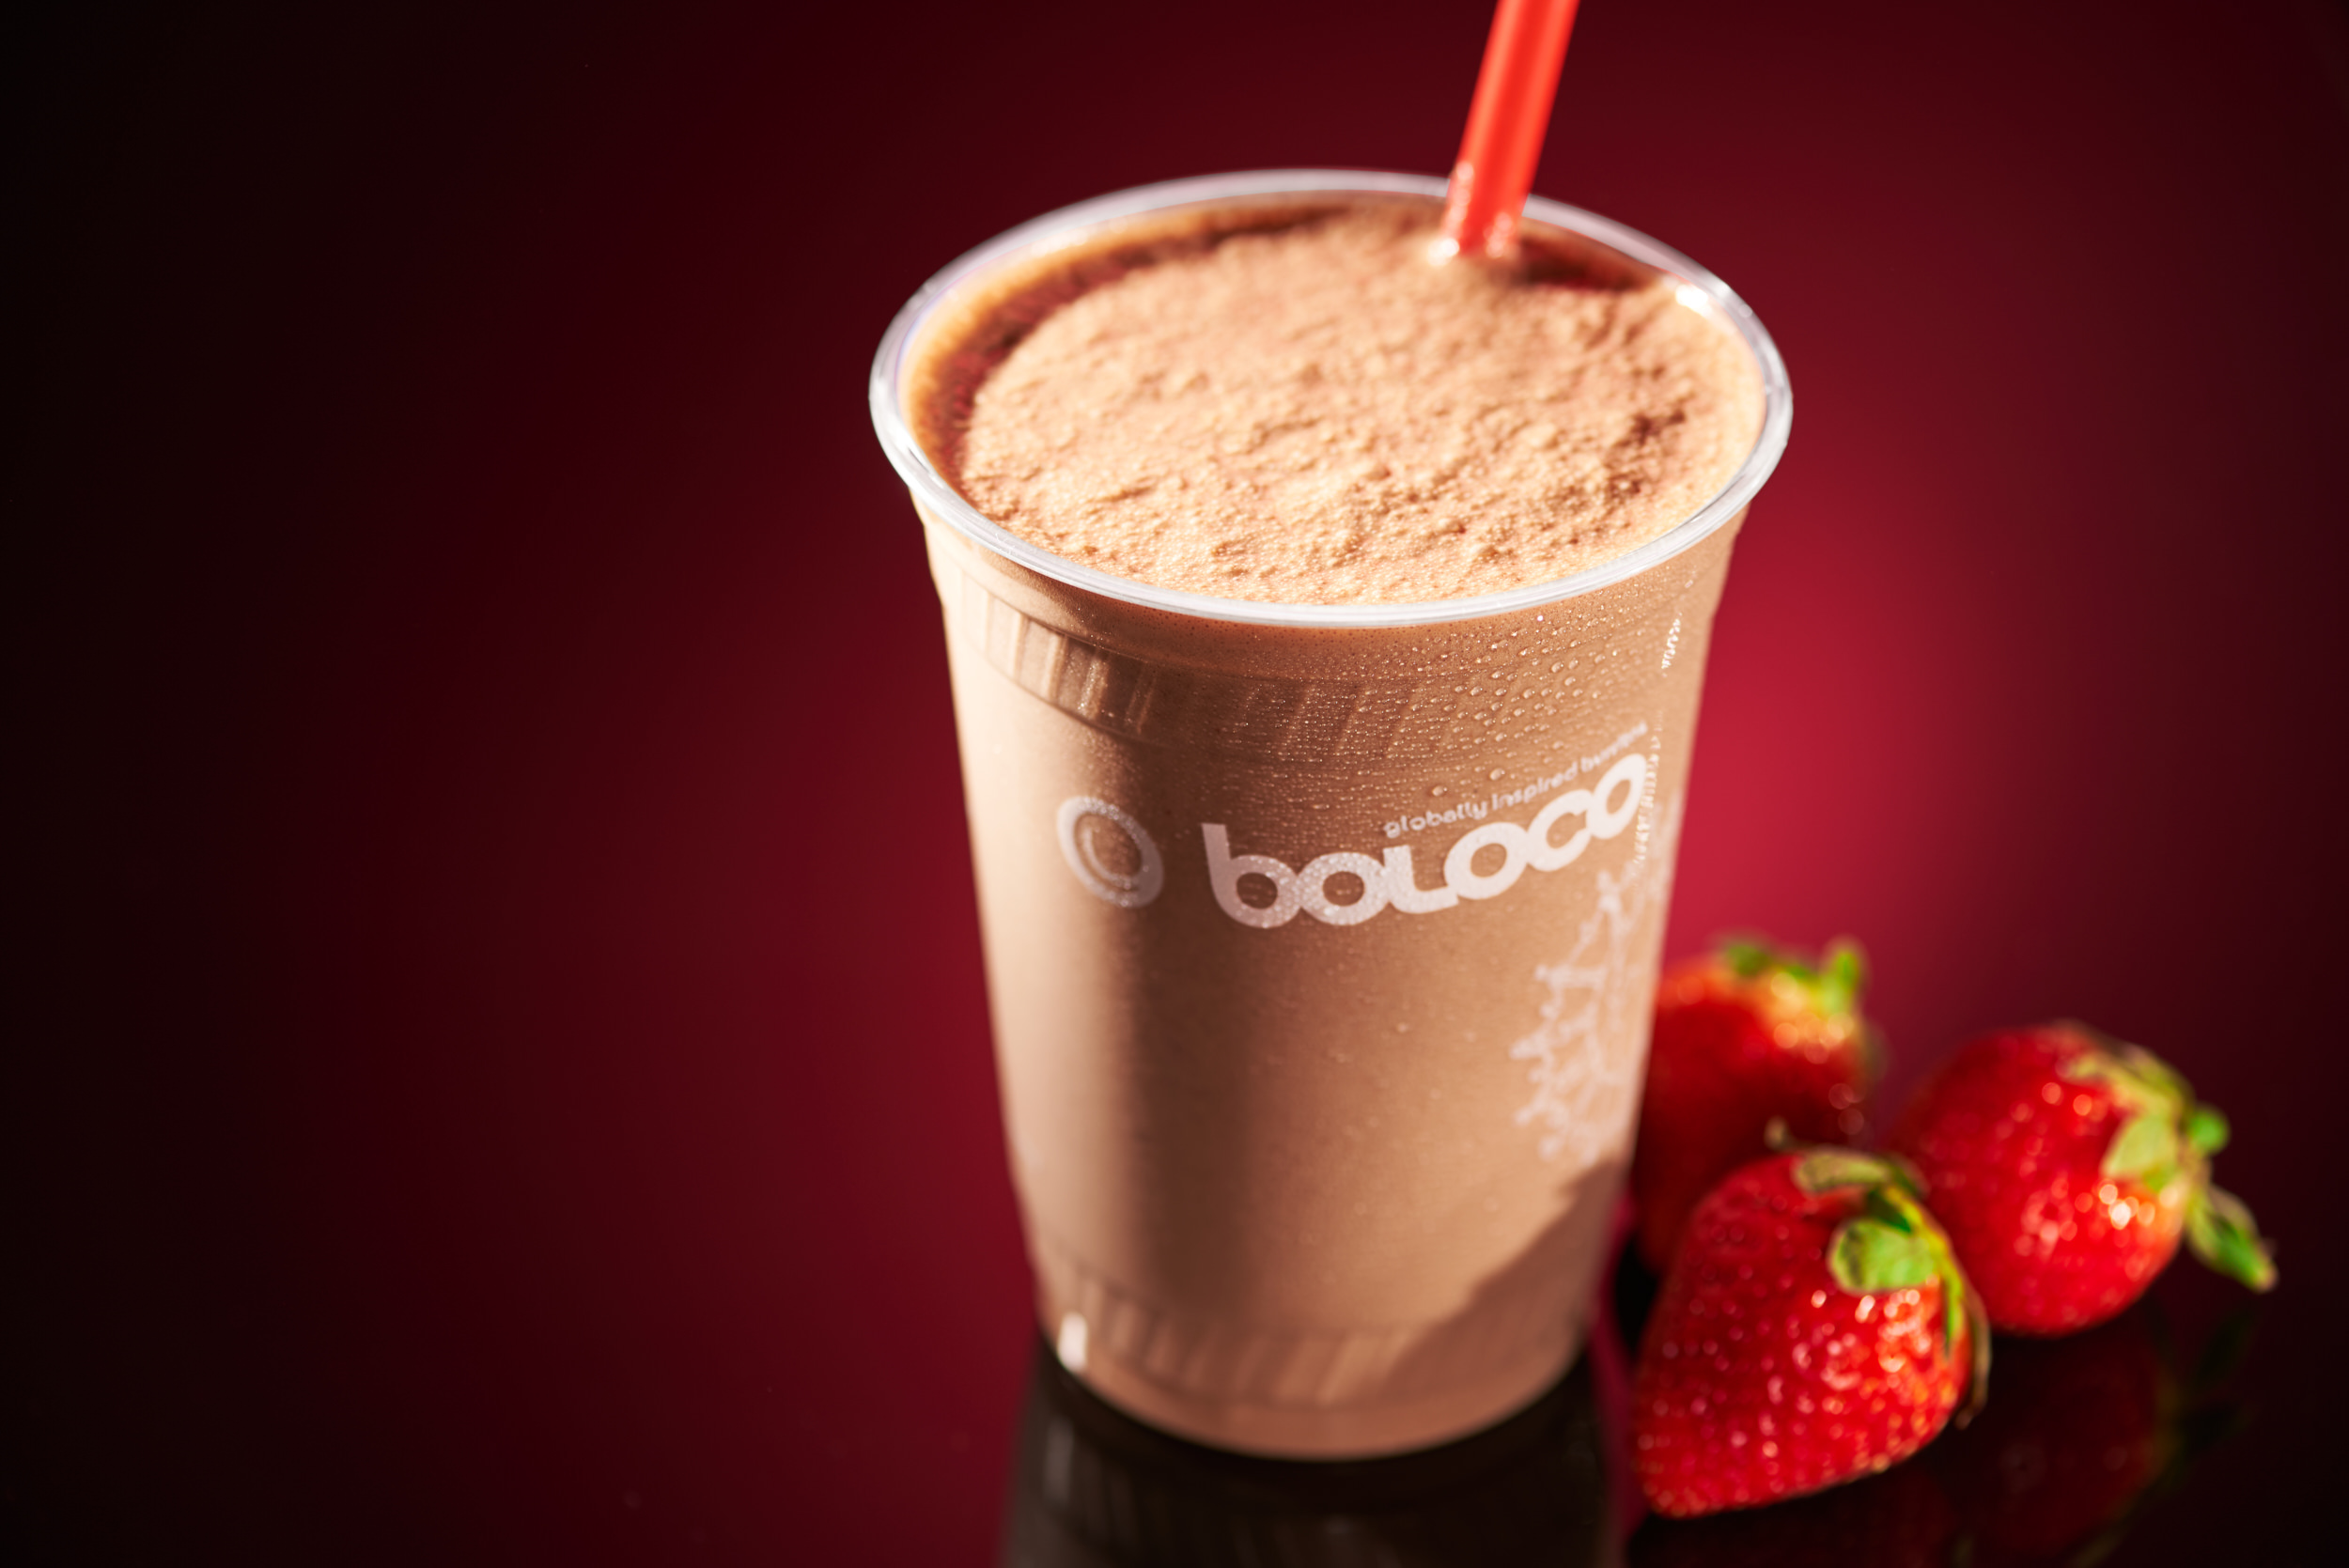 Professional picture of a strawberry and chocolate smoothie. Red background with strawberries next to the smoothie.